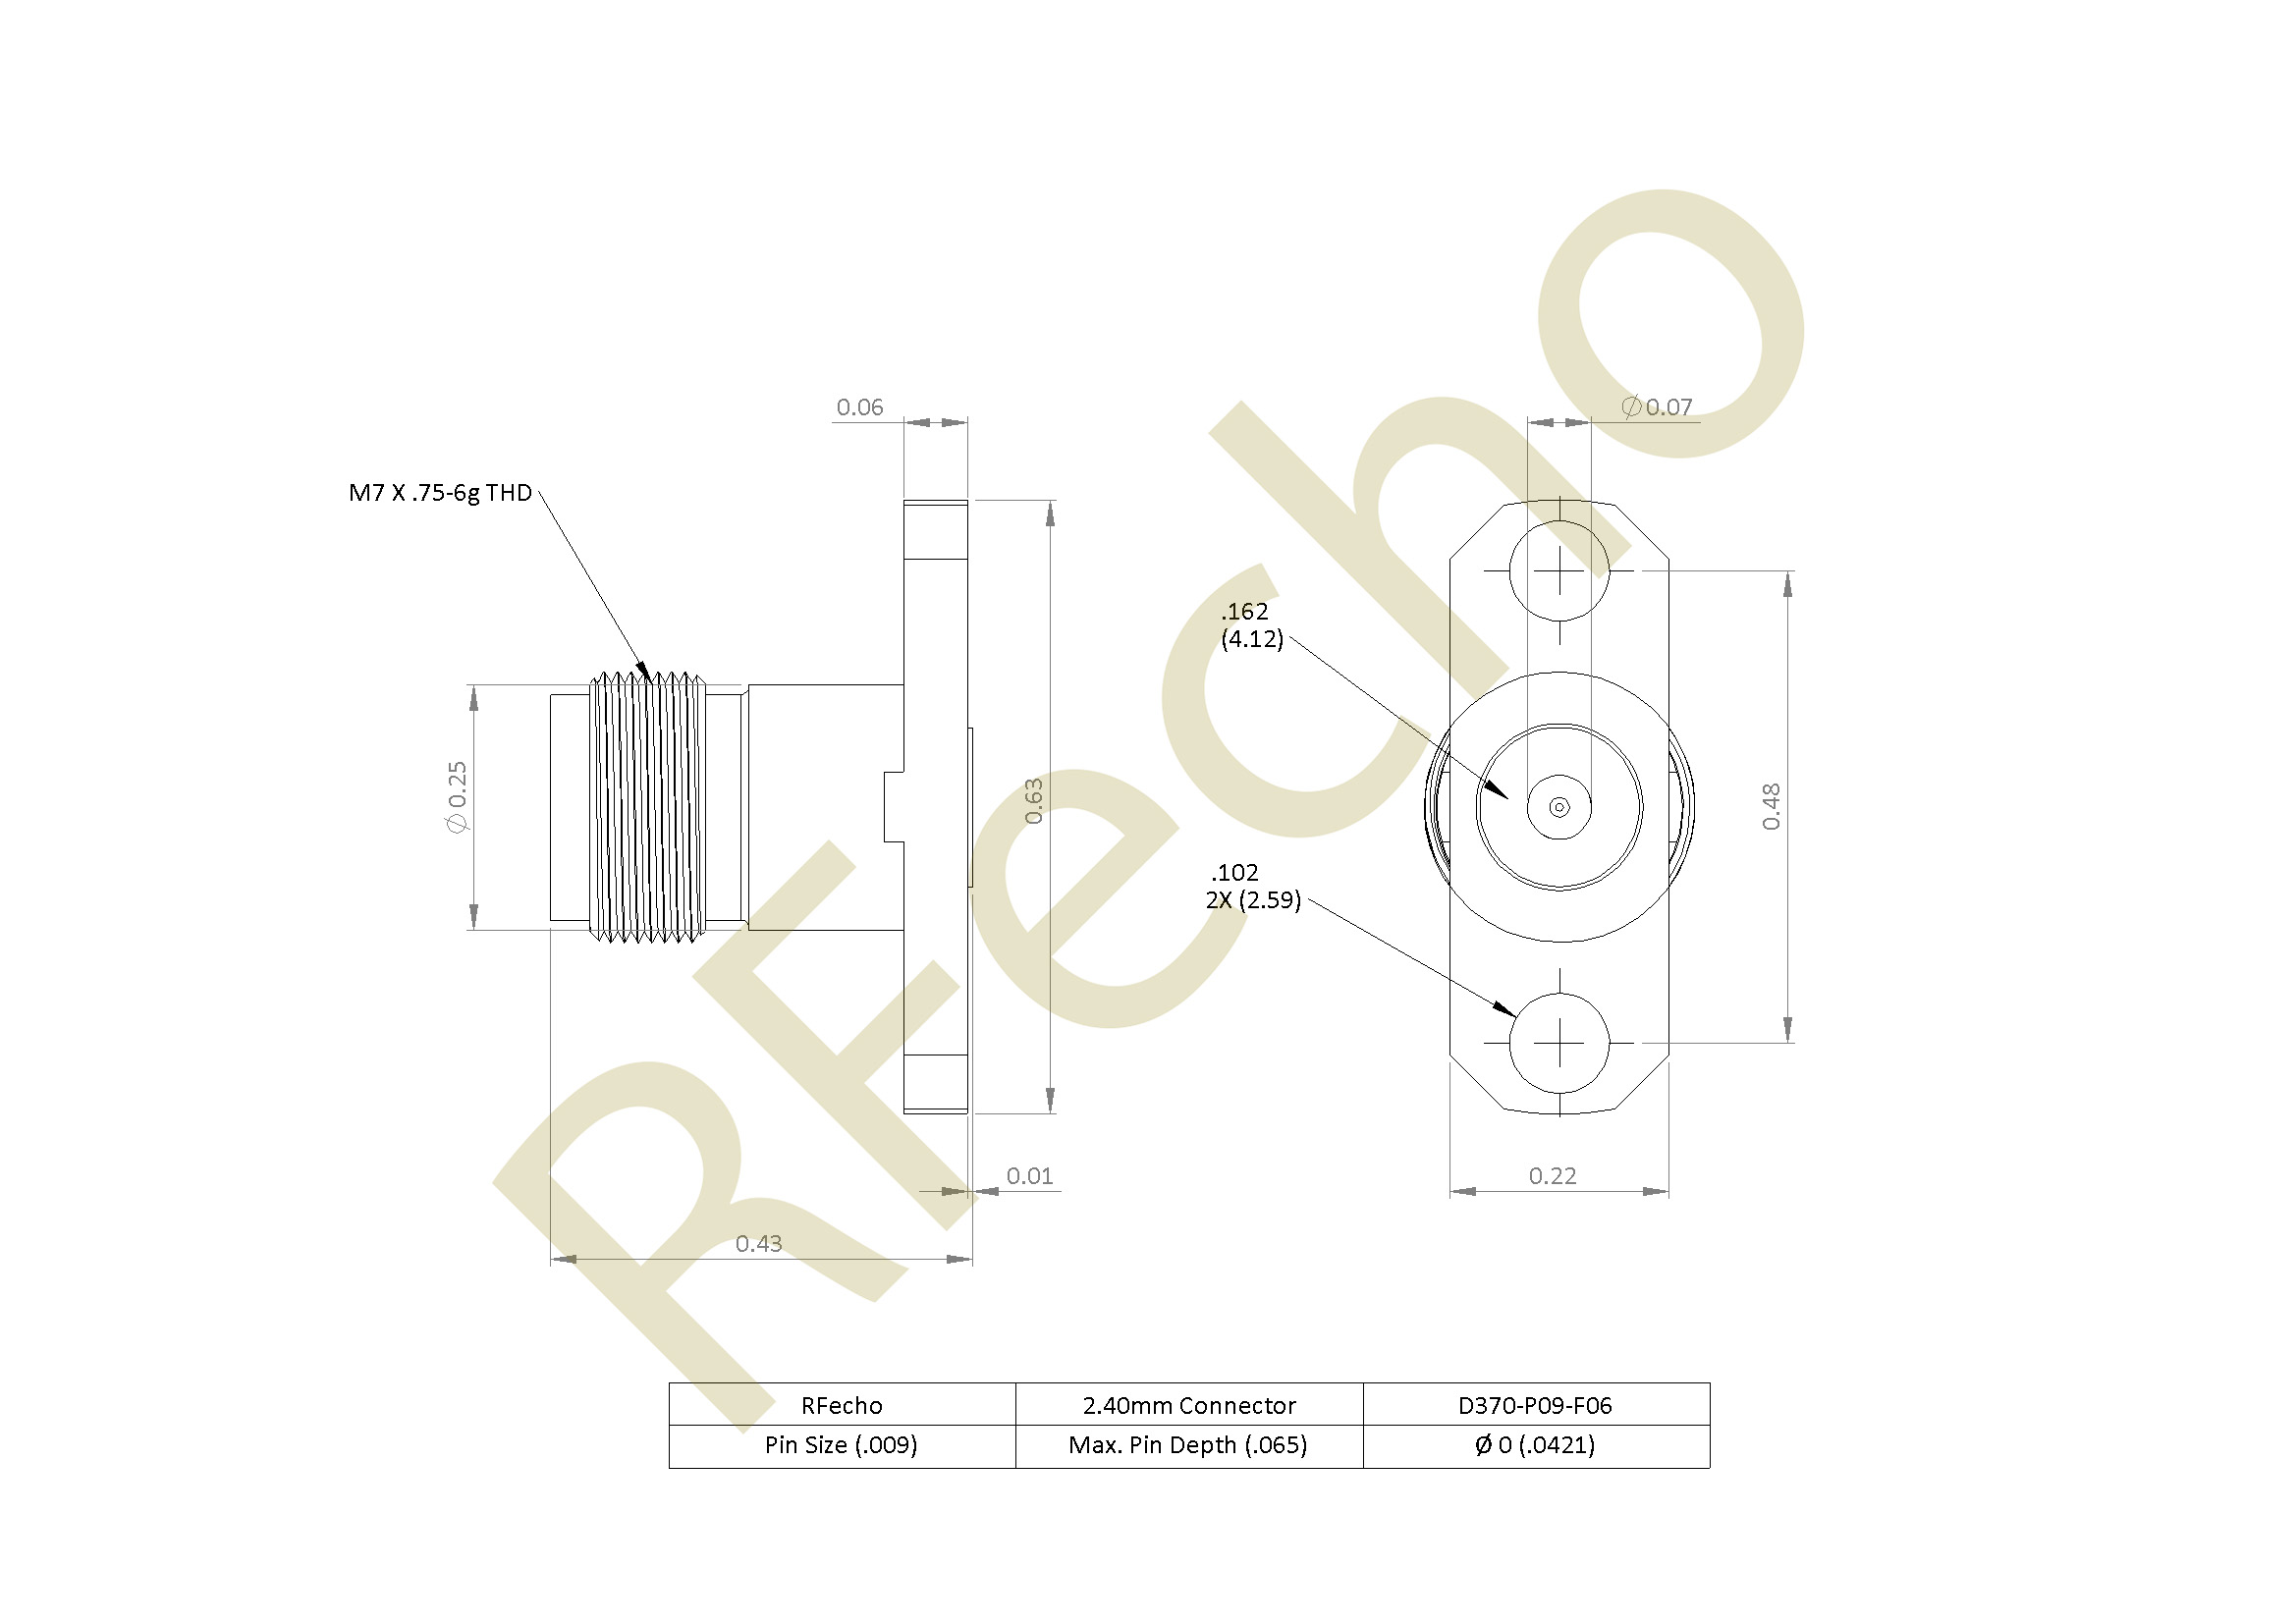 2.40mm 50 GHz, 0.009″ Accept Pin Diameter, 2 Hole .625″ Long Mounting Flange Female Connector